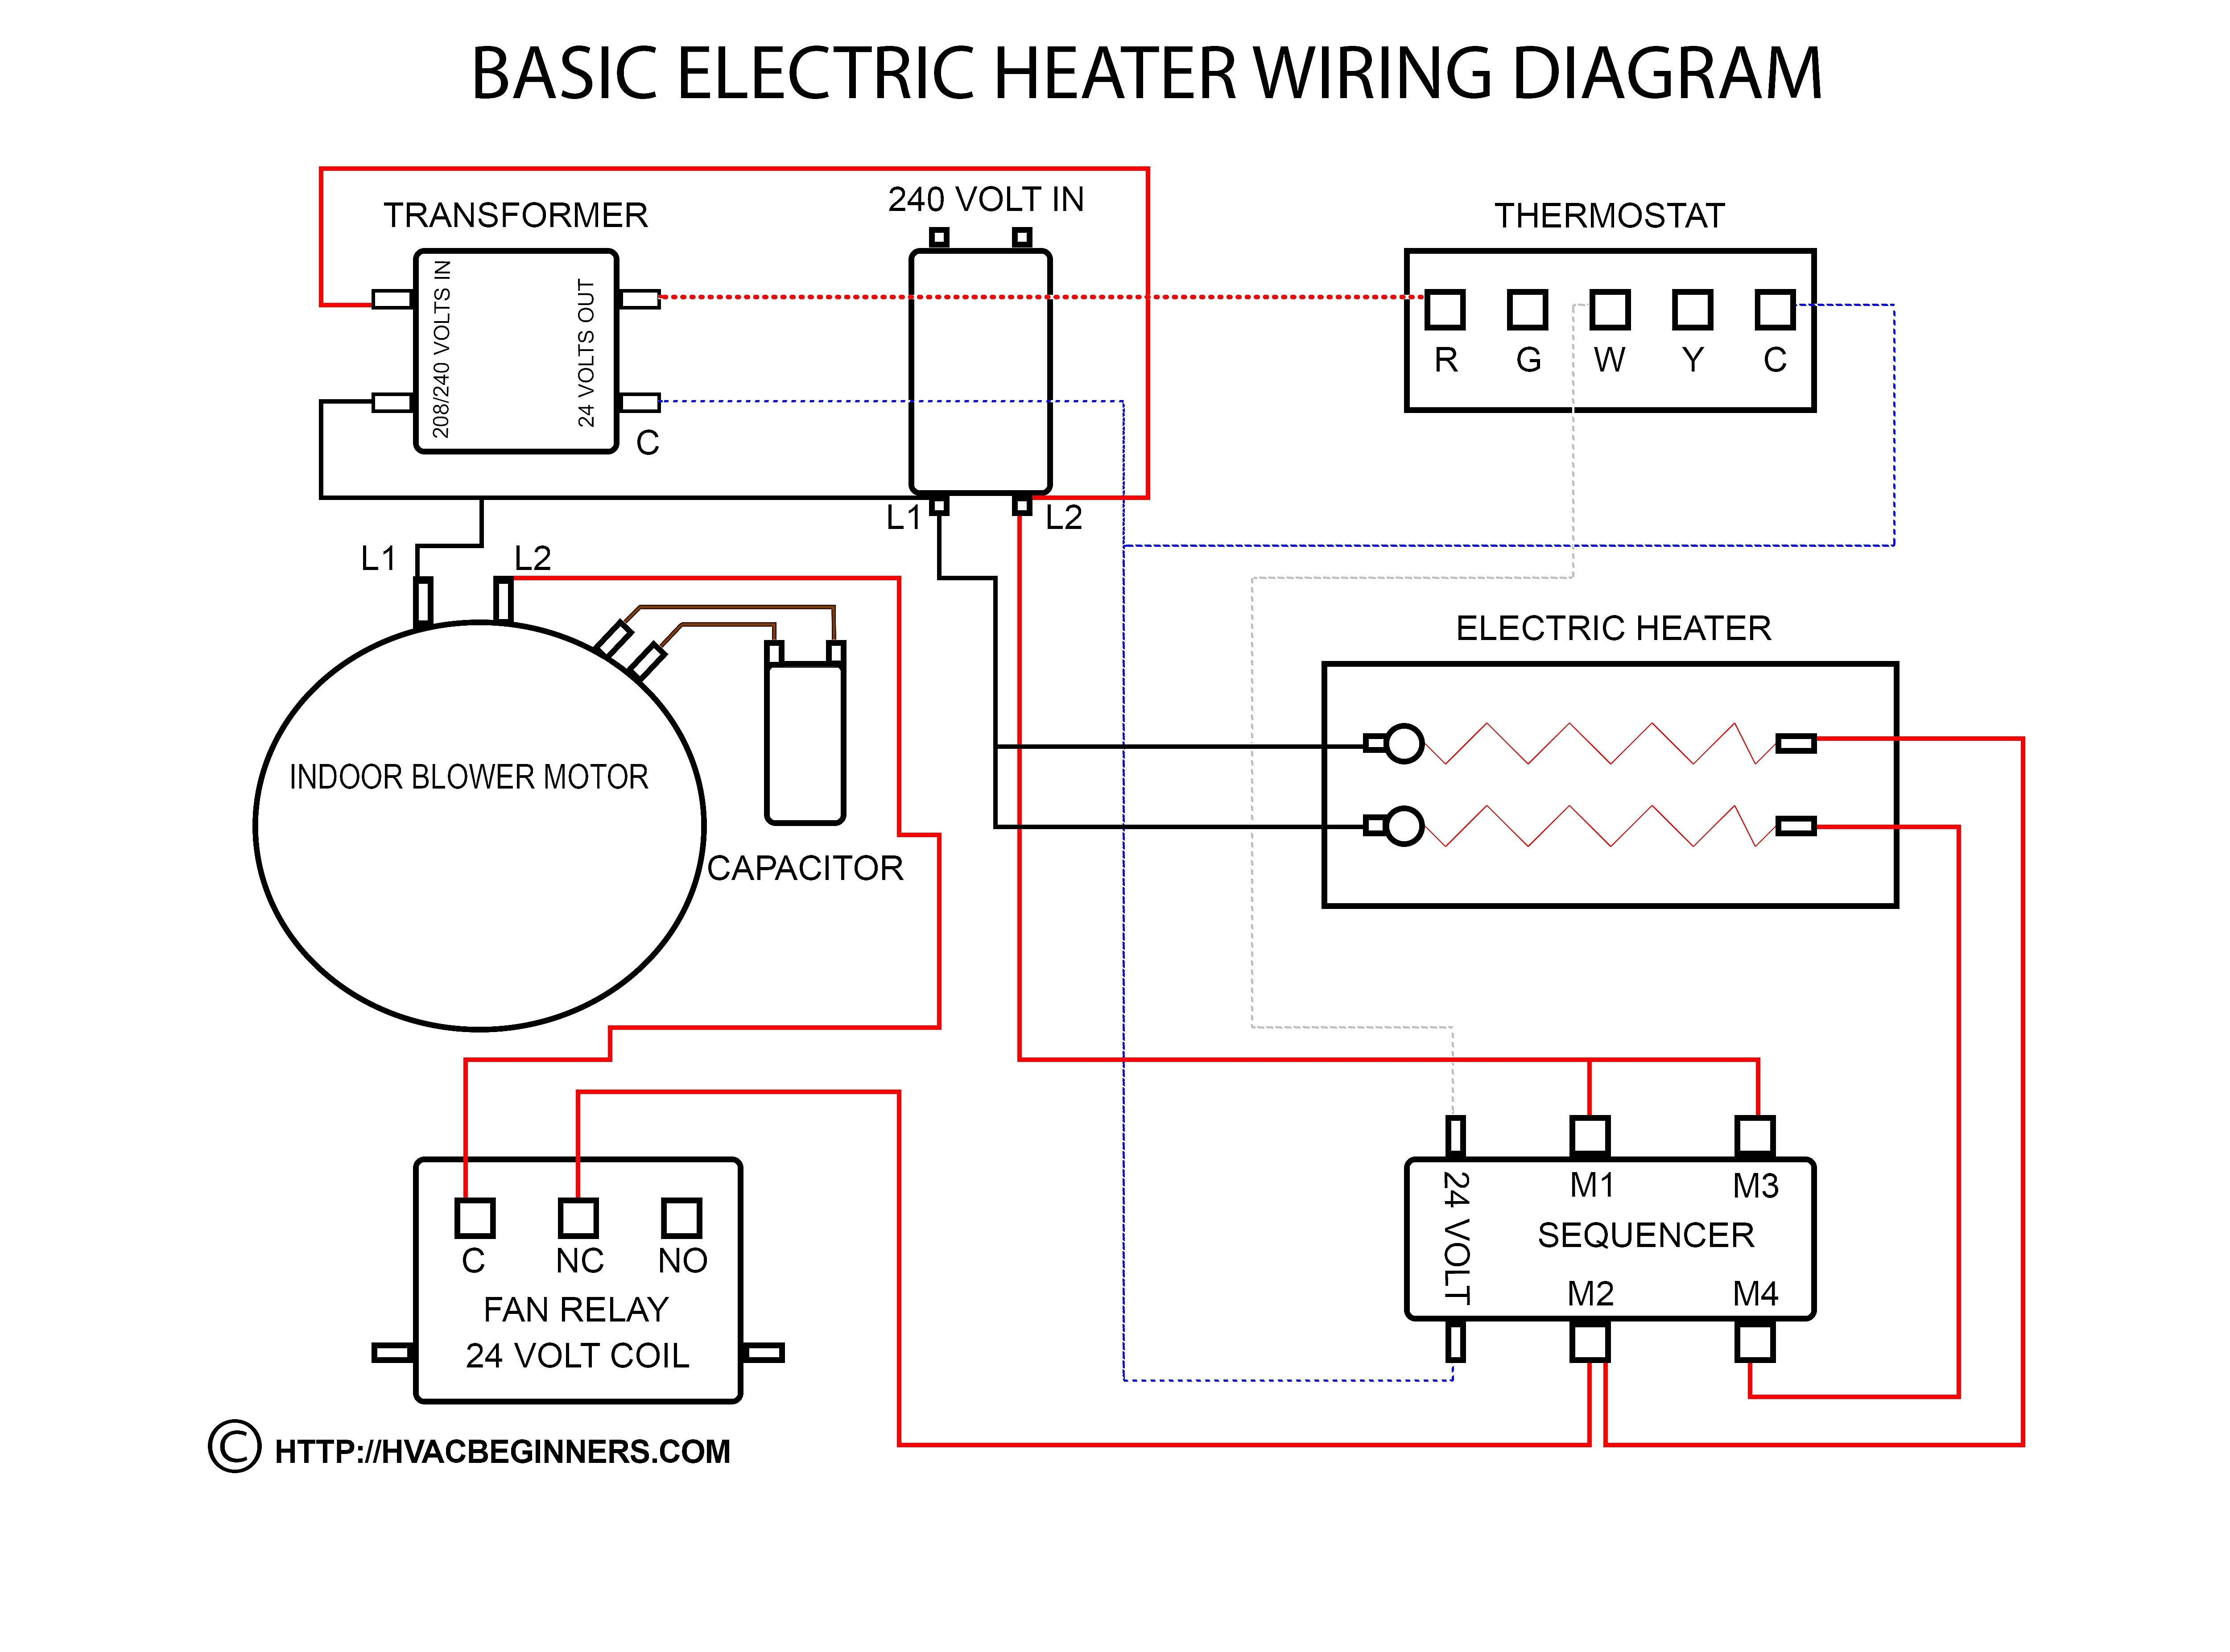 2 Wire Thermostat Wiring Diagram Shunt Trip Breaker - Trusted Wiring Fire Alarm Shunt Trip Wiring Diagram on fire alarm panel wiring, fire alarm relay wiring, fire alarm remote annunciator wiring,